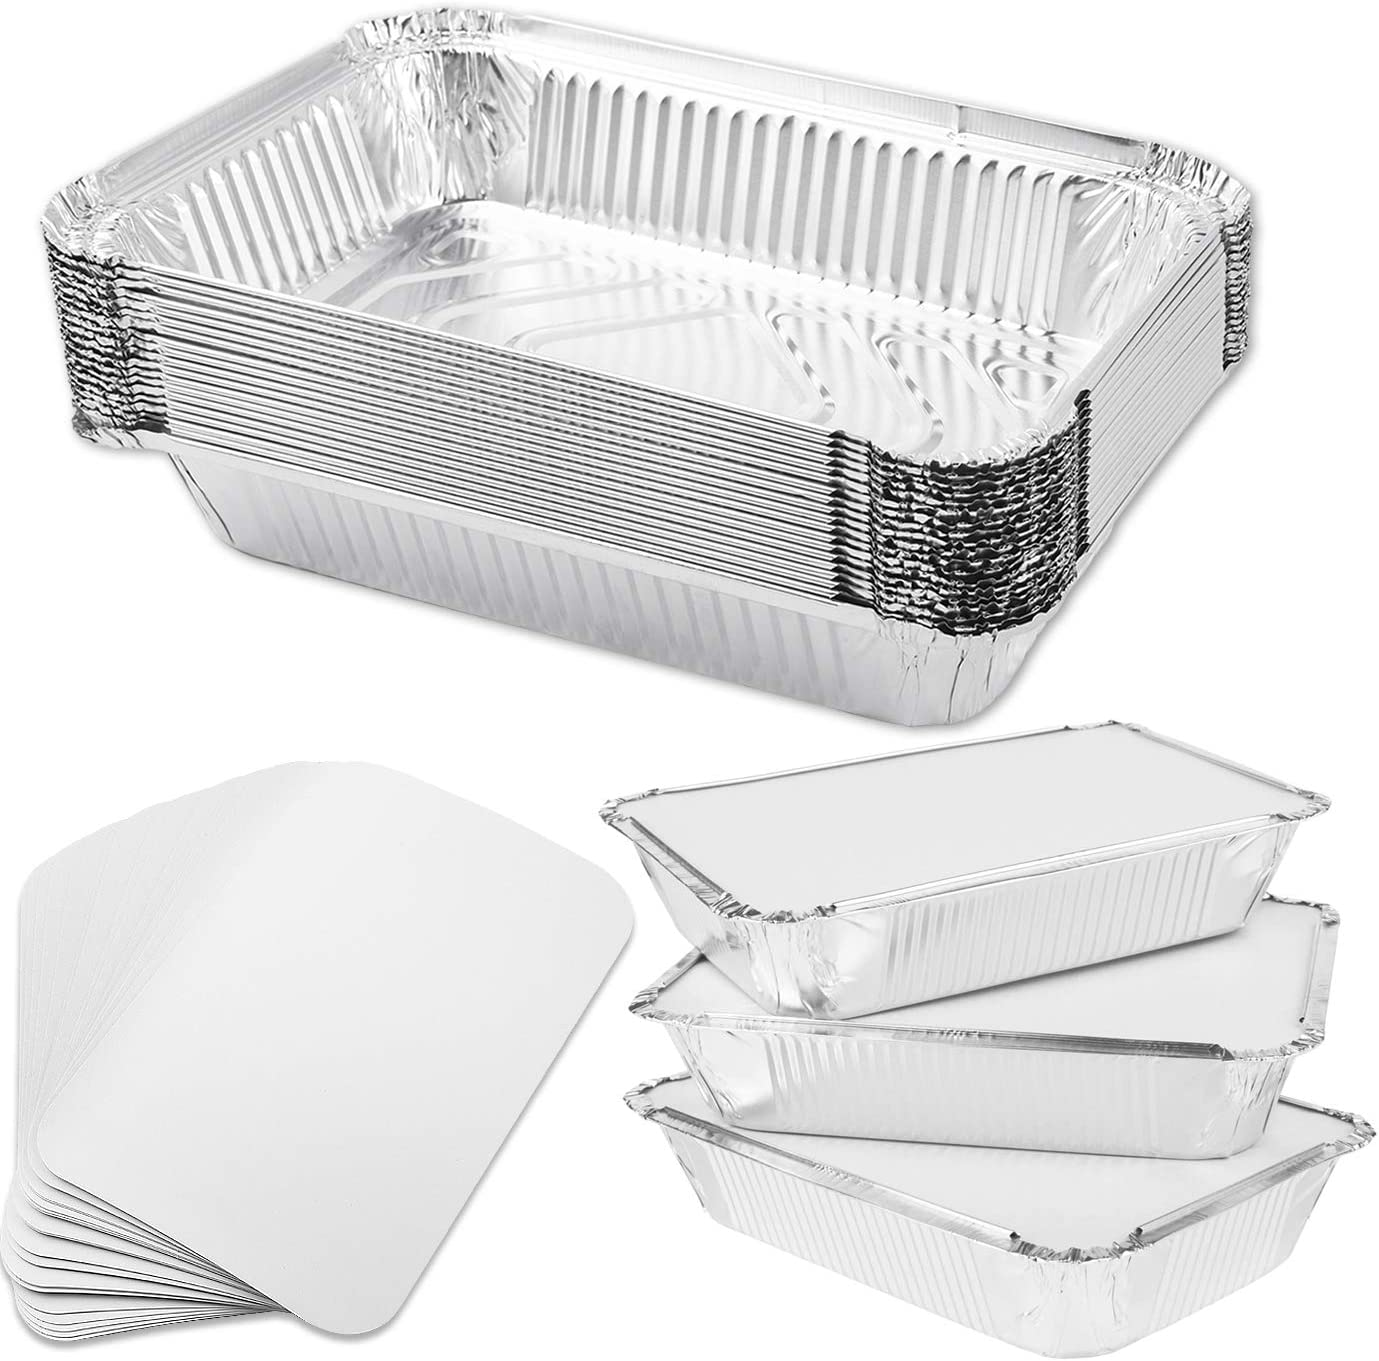 WXJ13 20 Packs Disposable Aluminum Foil Trays Containers with Paper Lids 750ml for Baking, Steaming, Cooking, Storing and Freezing 8.2 Inches x 5.5 Inches